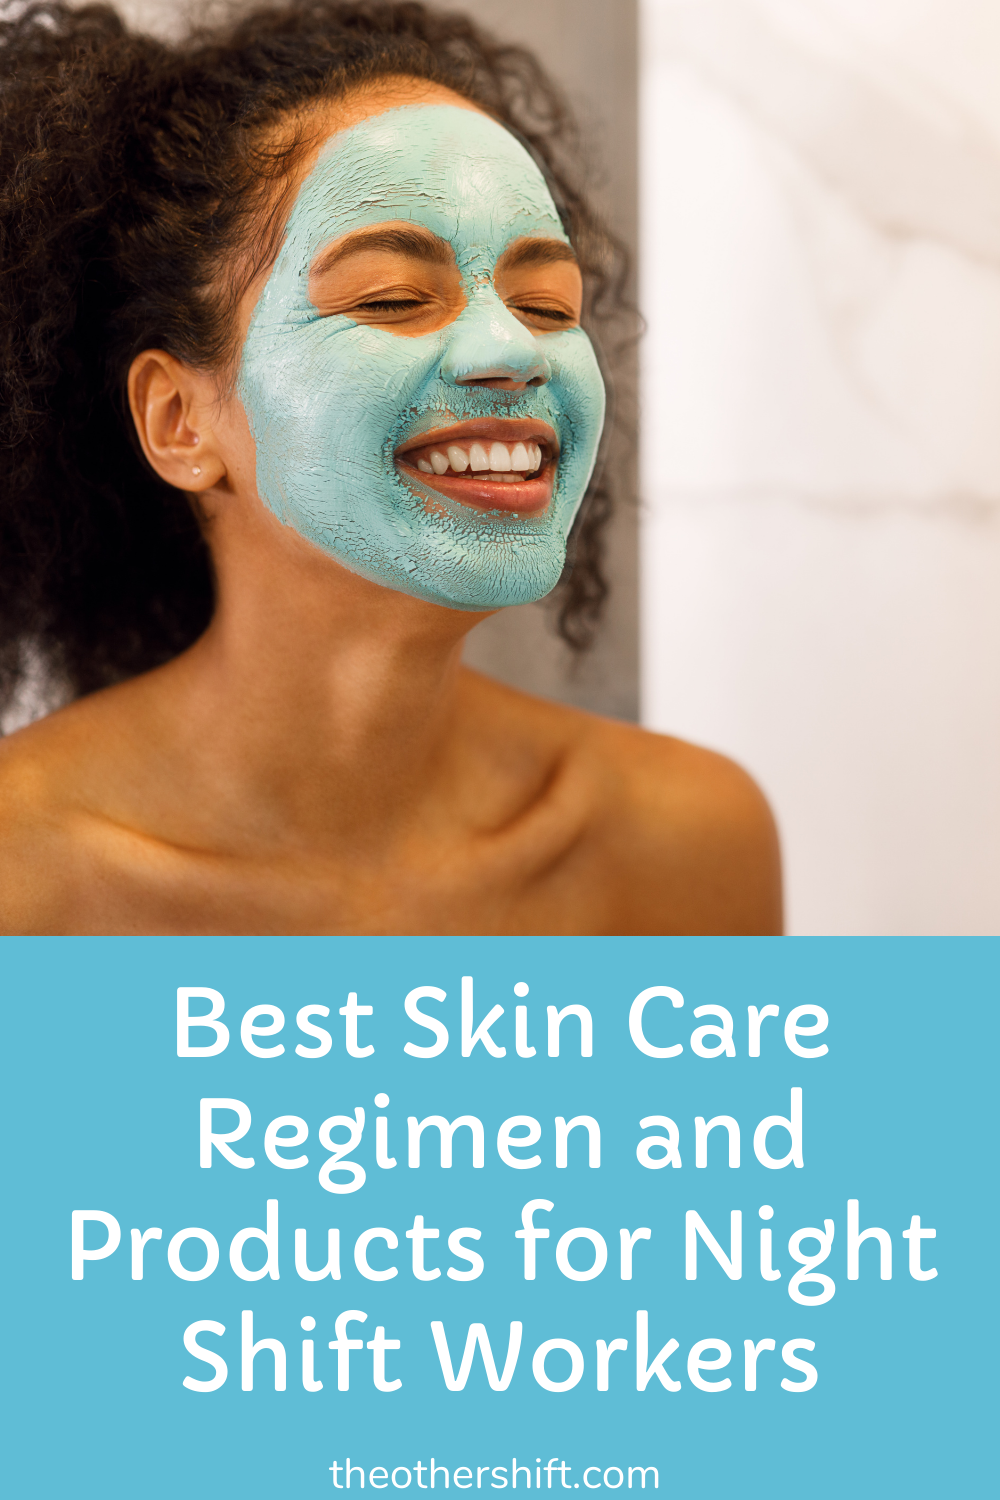 Best Effective Skin Care Products For Night Shift Workers Best Skin Care Regimen Skin Care Effective Skin Care Products